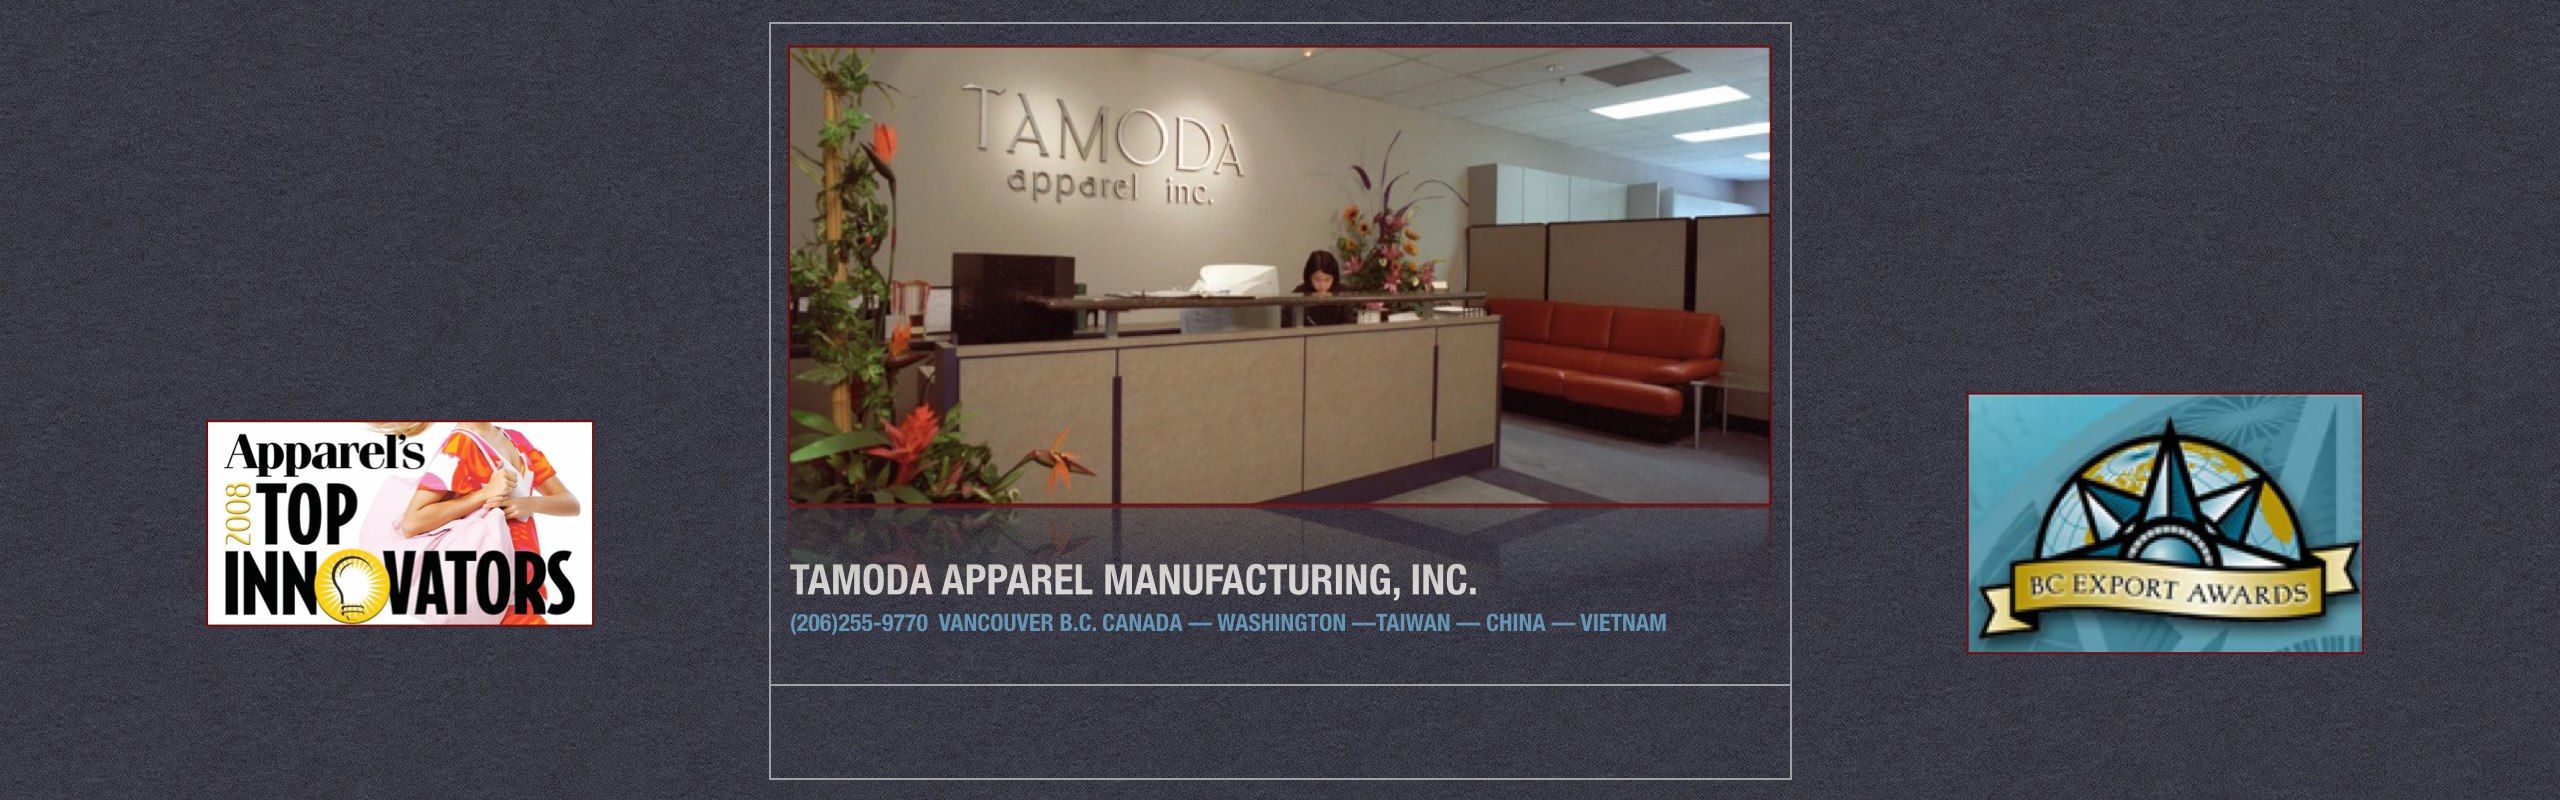 Tamoda Apparel Manufacturing